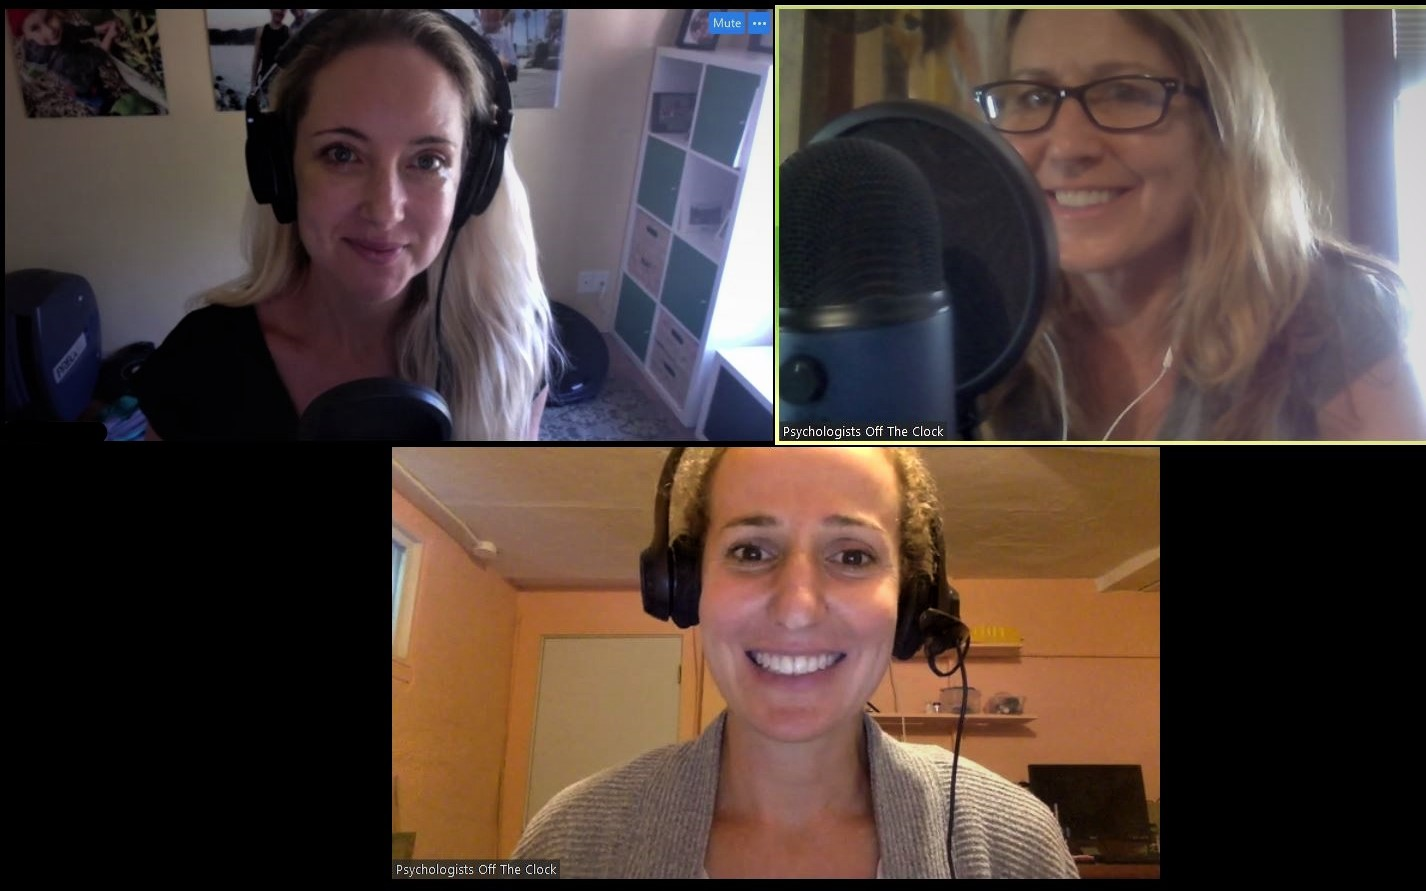 Here we are, recording our big 100th episode! (Clockwise from upper left: Diana, Debbie, and Yael)  __________________________  Thank you for joining us on this episode of  Psychologists Off The Clock . We appreciate your feedback. Please take a moment to leave a quick rating and review of the show on  Apple Podcasts . It helps us spread the word to more folks like you!   Click Here to Subscribe via Apple Podcasts    Click Here to Subscribe via Stitcher    Click here to Subscribe via Google Play